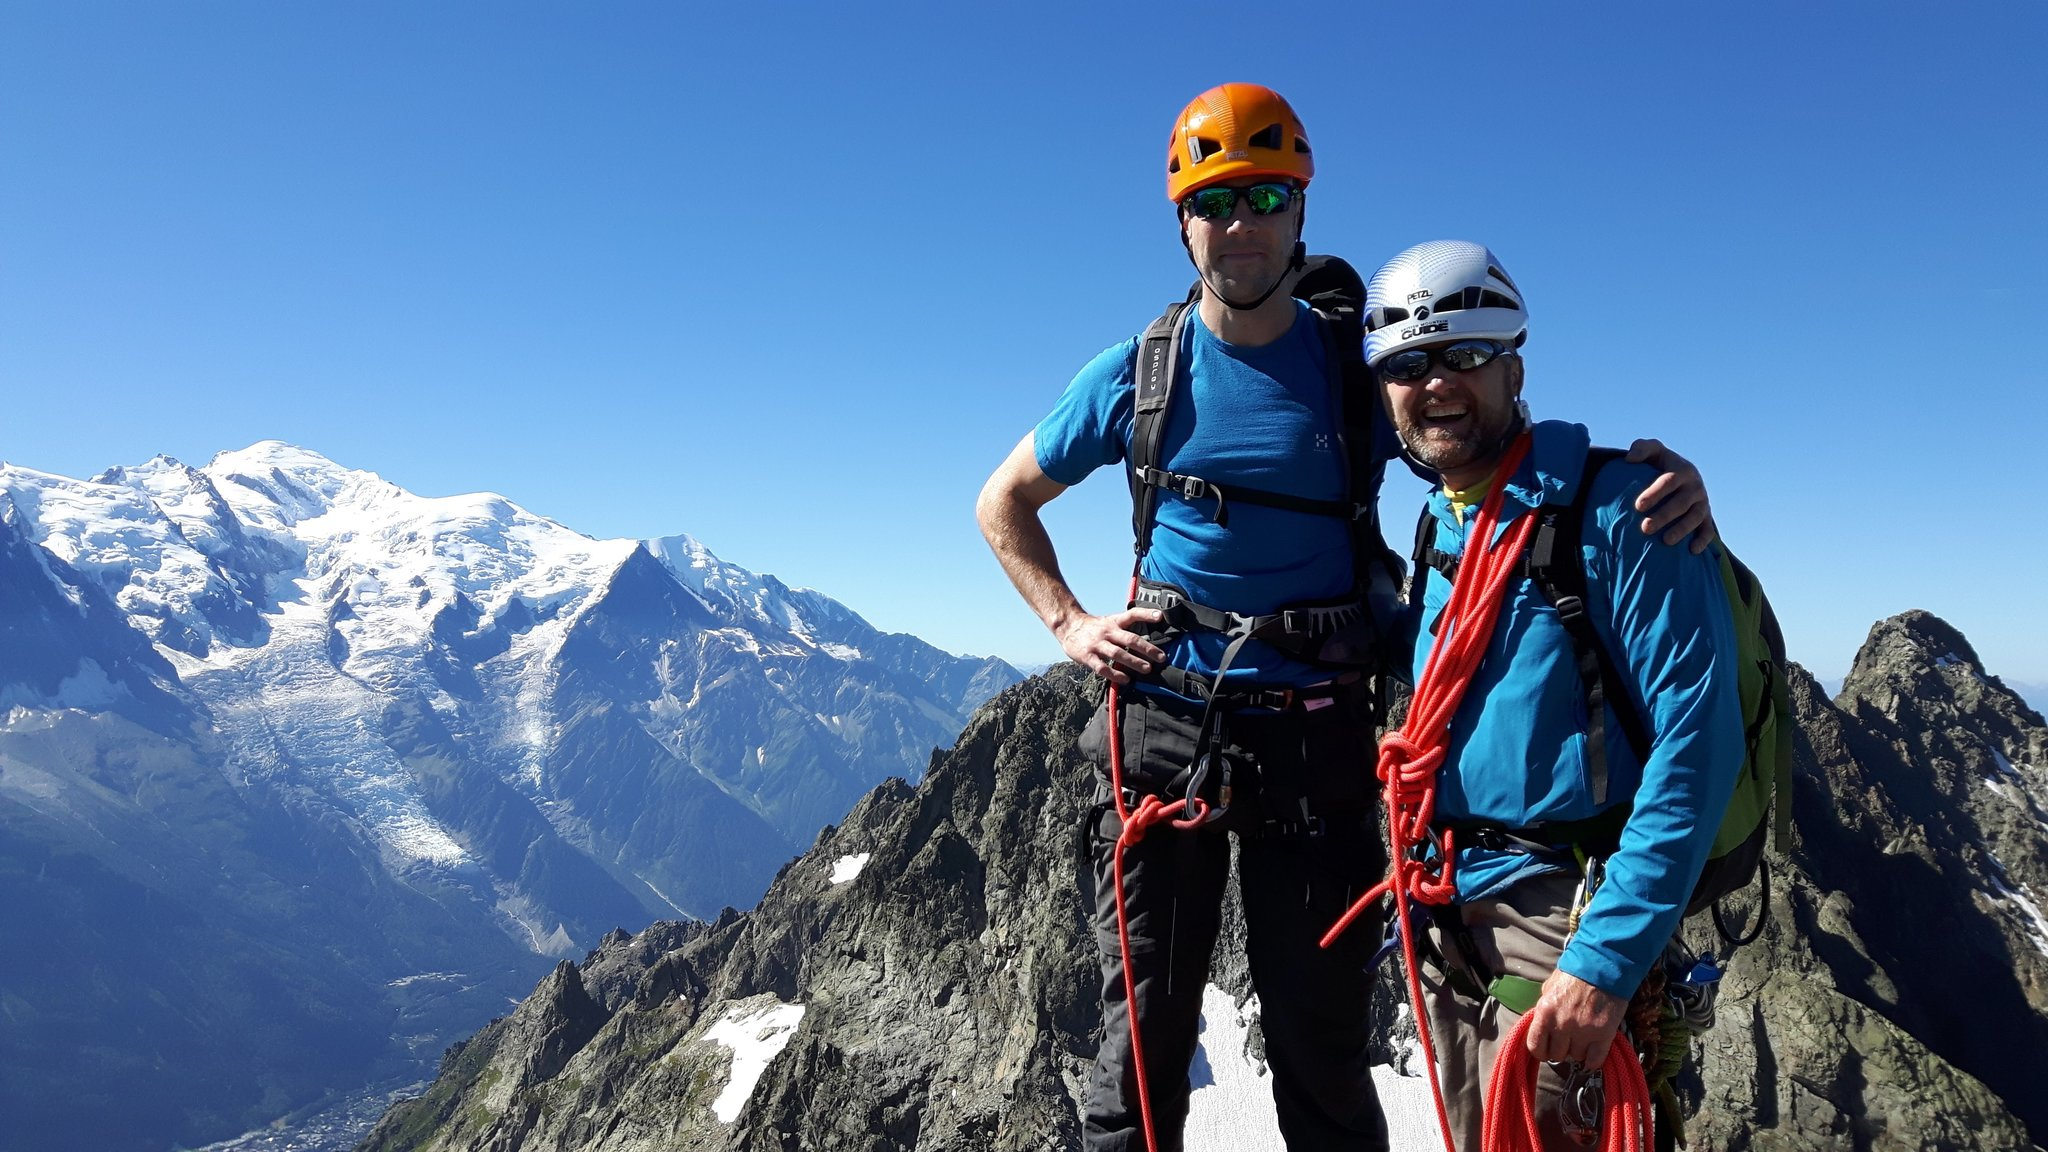 On the summit of the Aiguilles Crochues with James